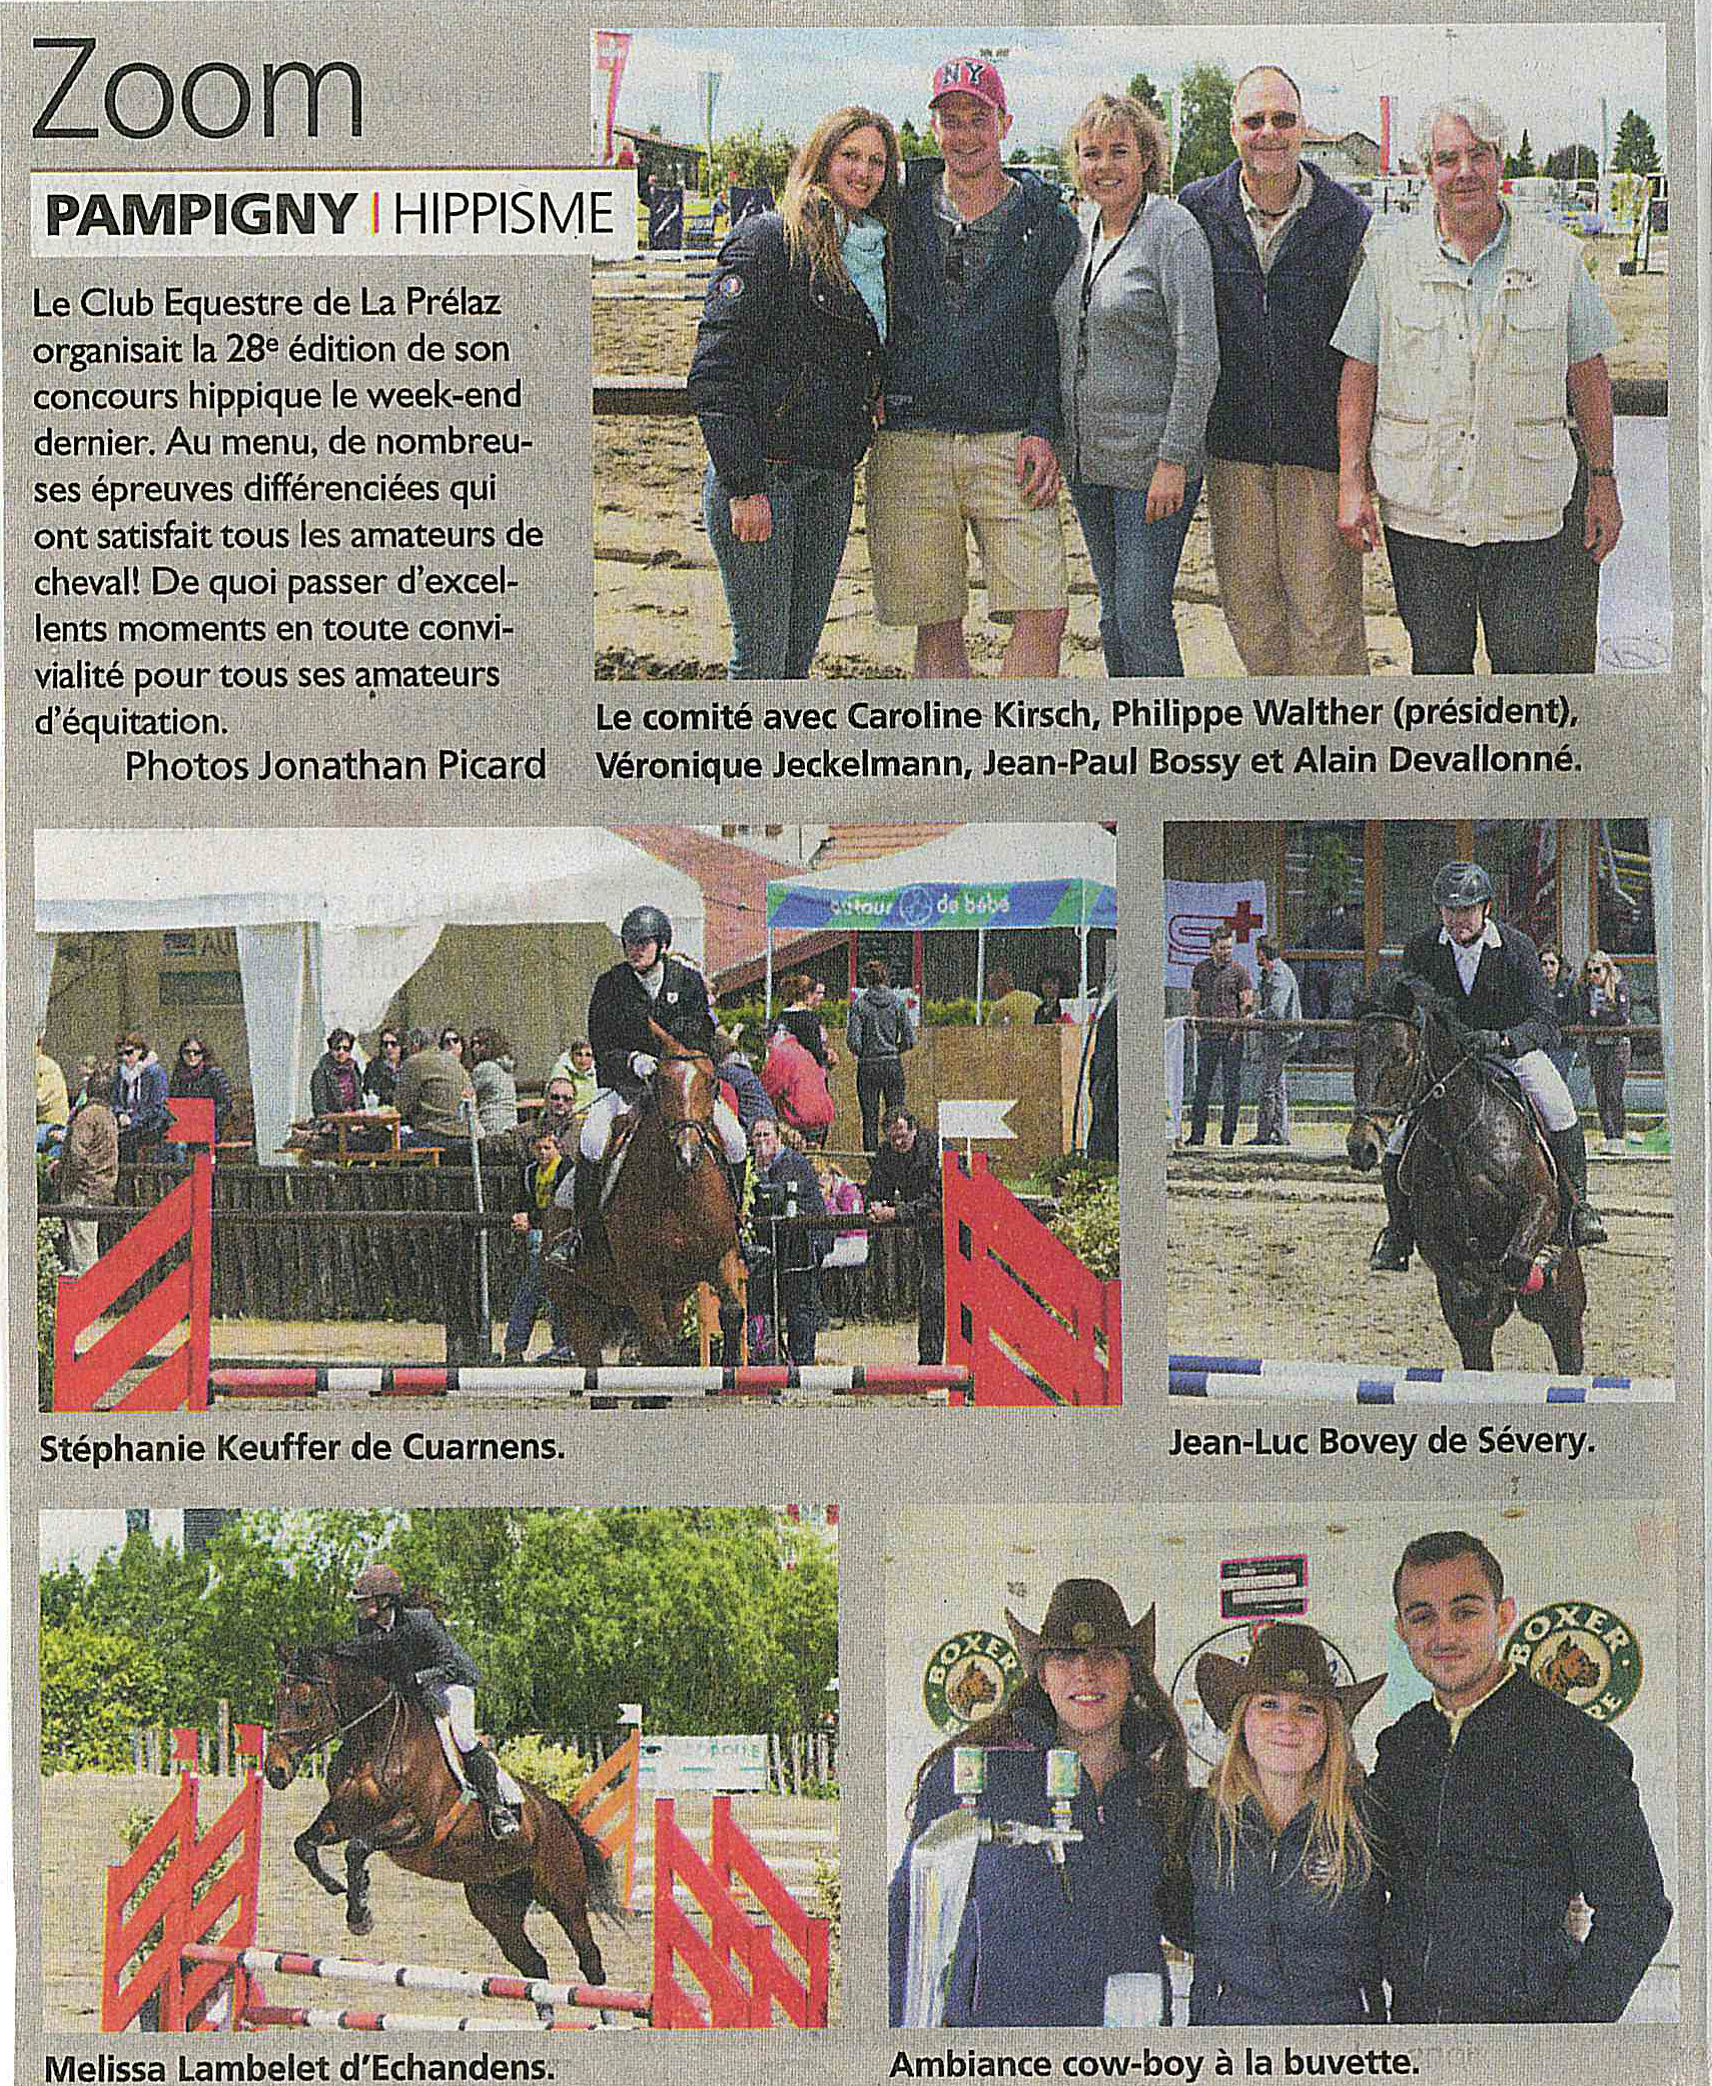 CS_PAMPIGNY_2014/cs-pampigny-2014---journal-de-morges---30052014.png